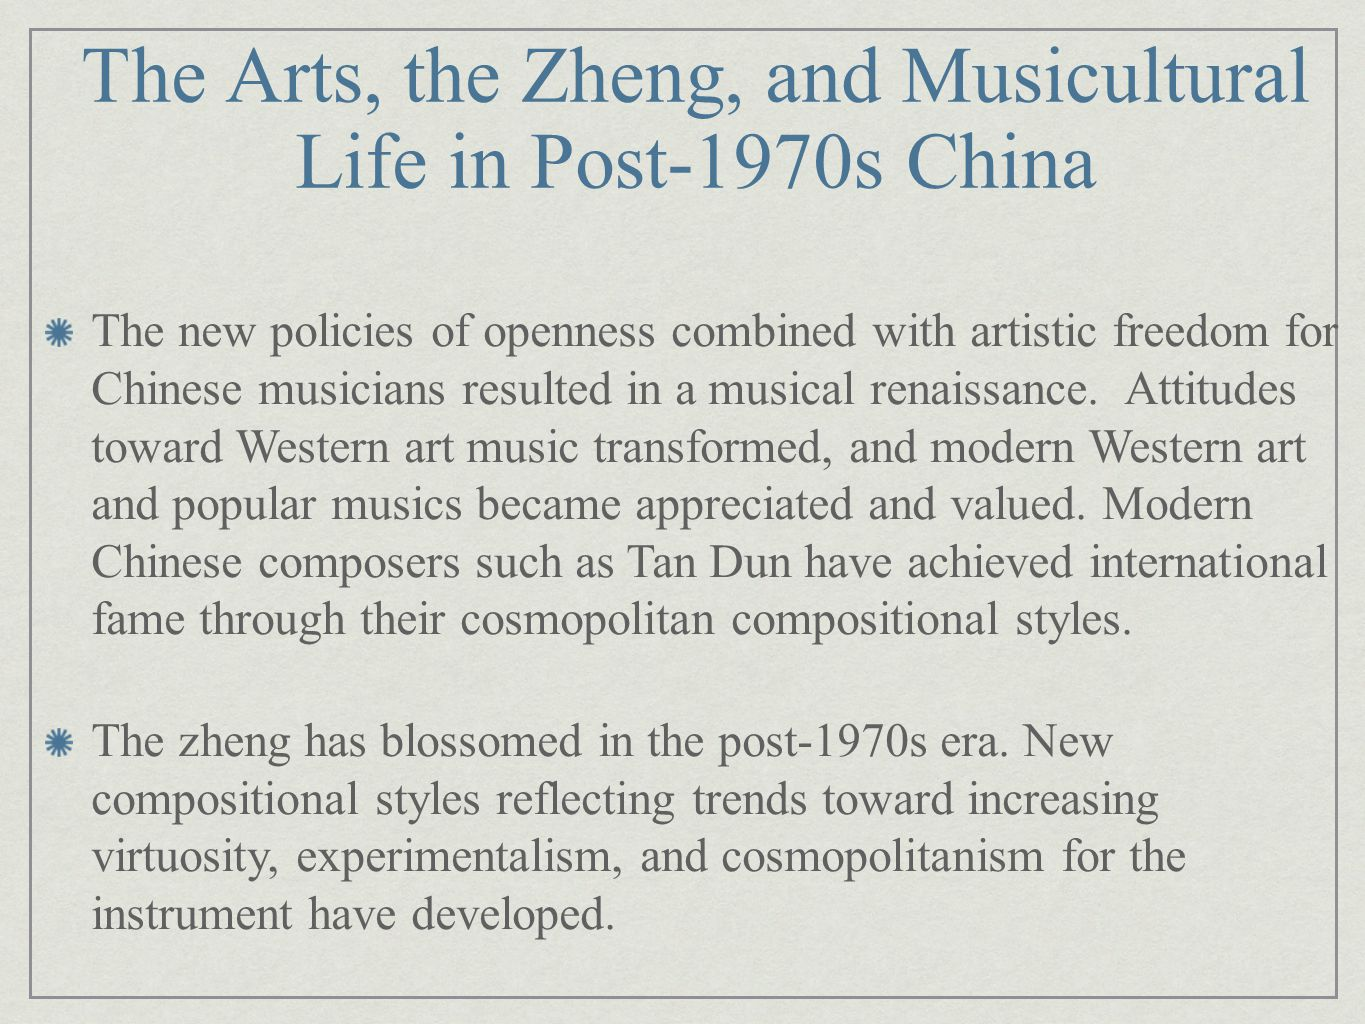 The Arts, the Zheng, and Musicultural Life in Post-1970s China